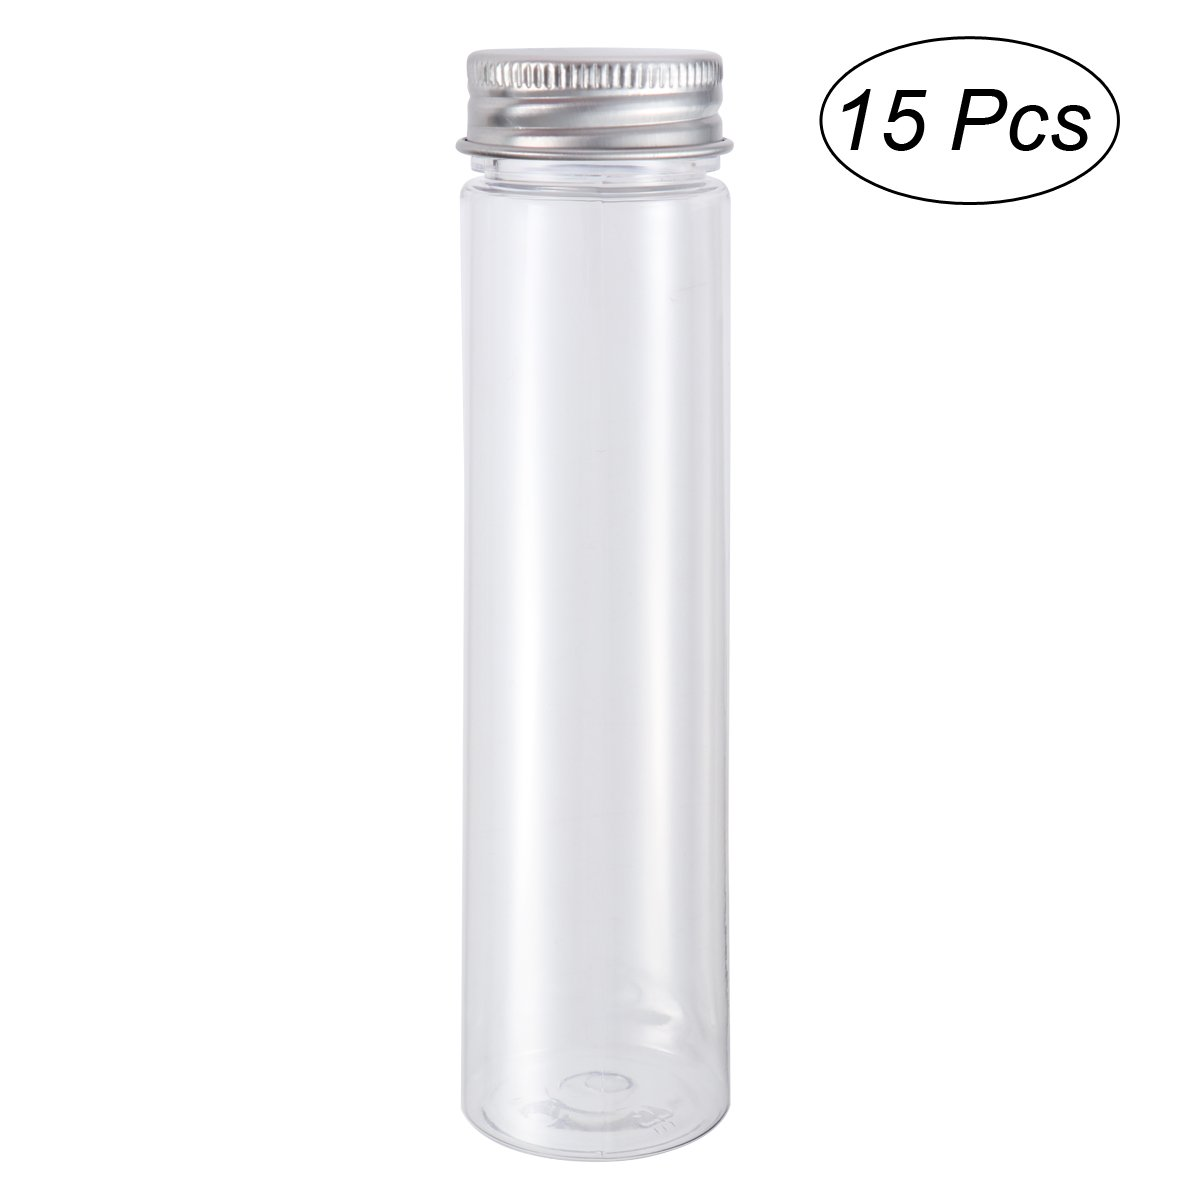 UEETEK 15pcs 110ml Clear Plastic Flat Bottom Test Tubes with Screw Caps - Containers for various purposes